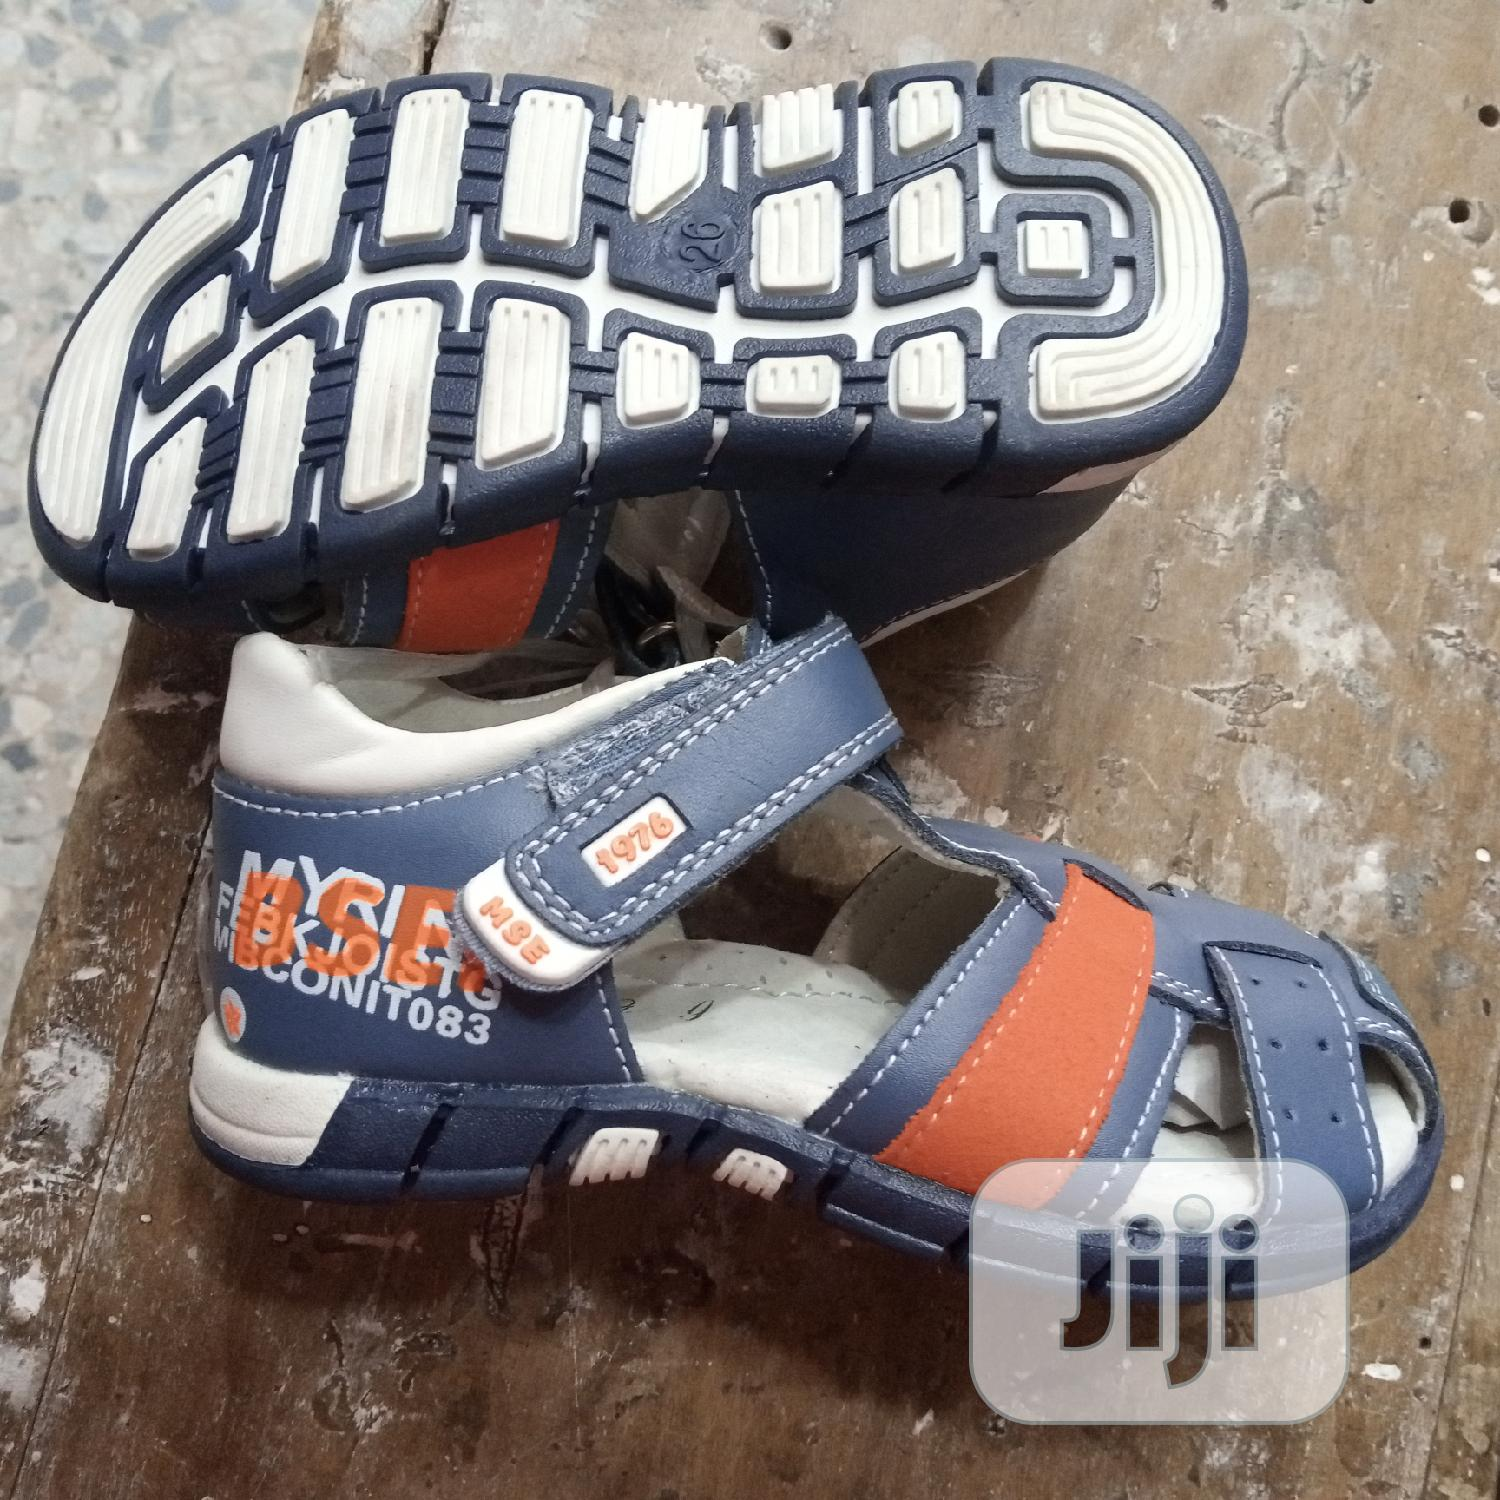 Kiddies Sandals Both In Wholesale And Retail Price